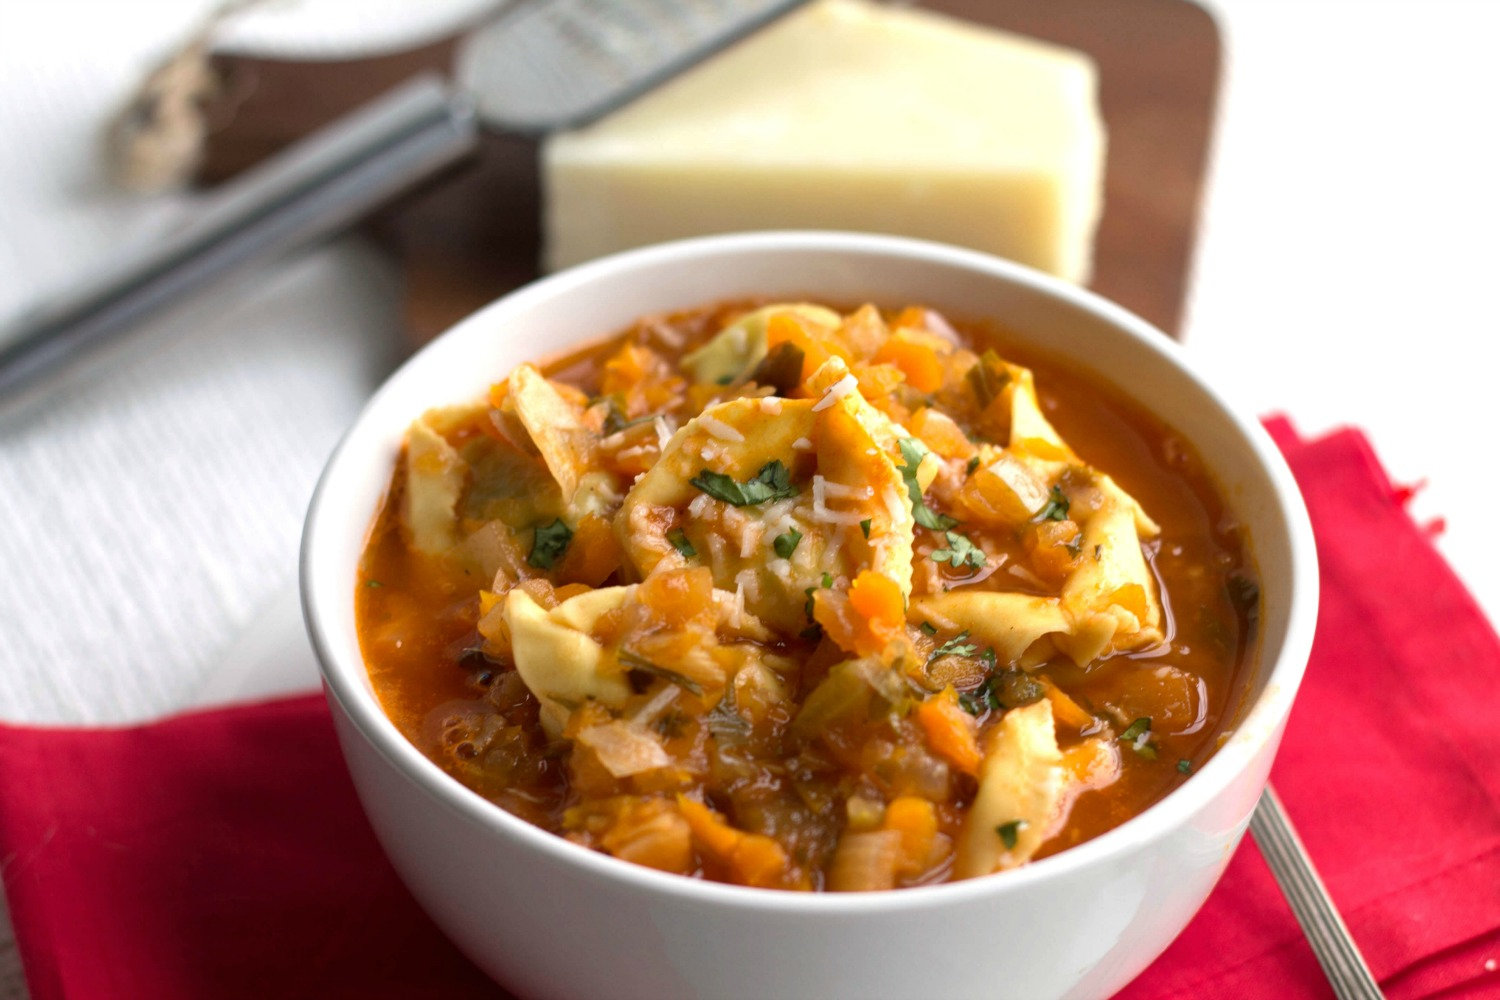 Tortellini Vegetable Soup